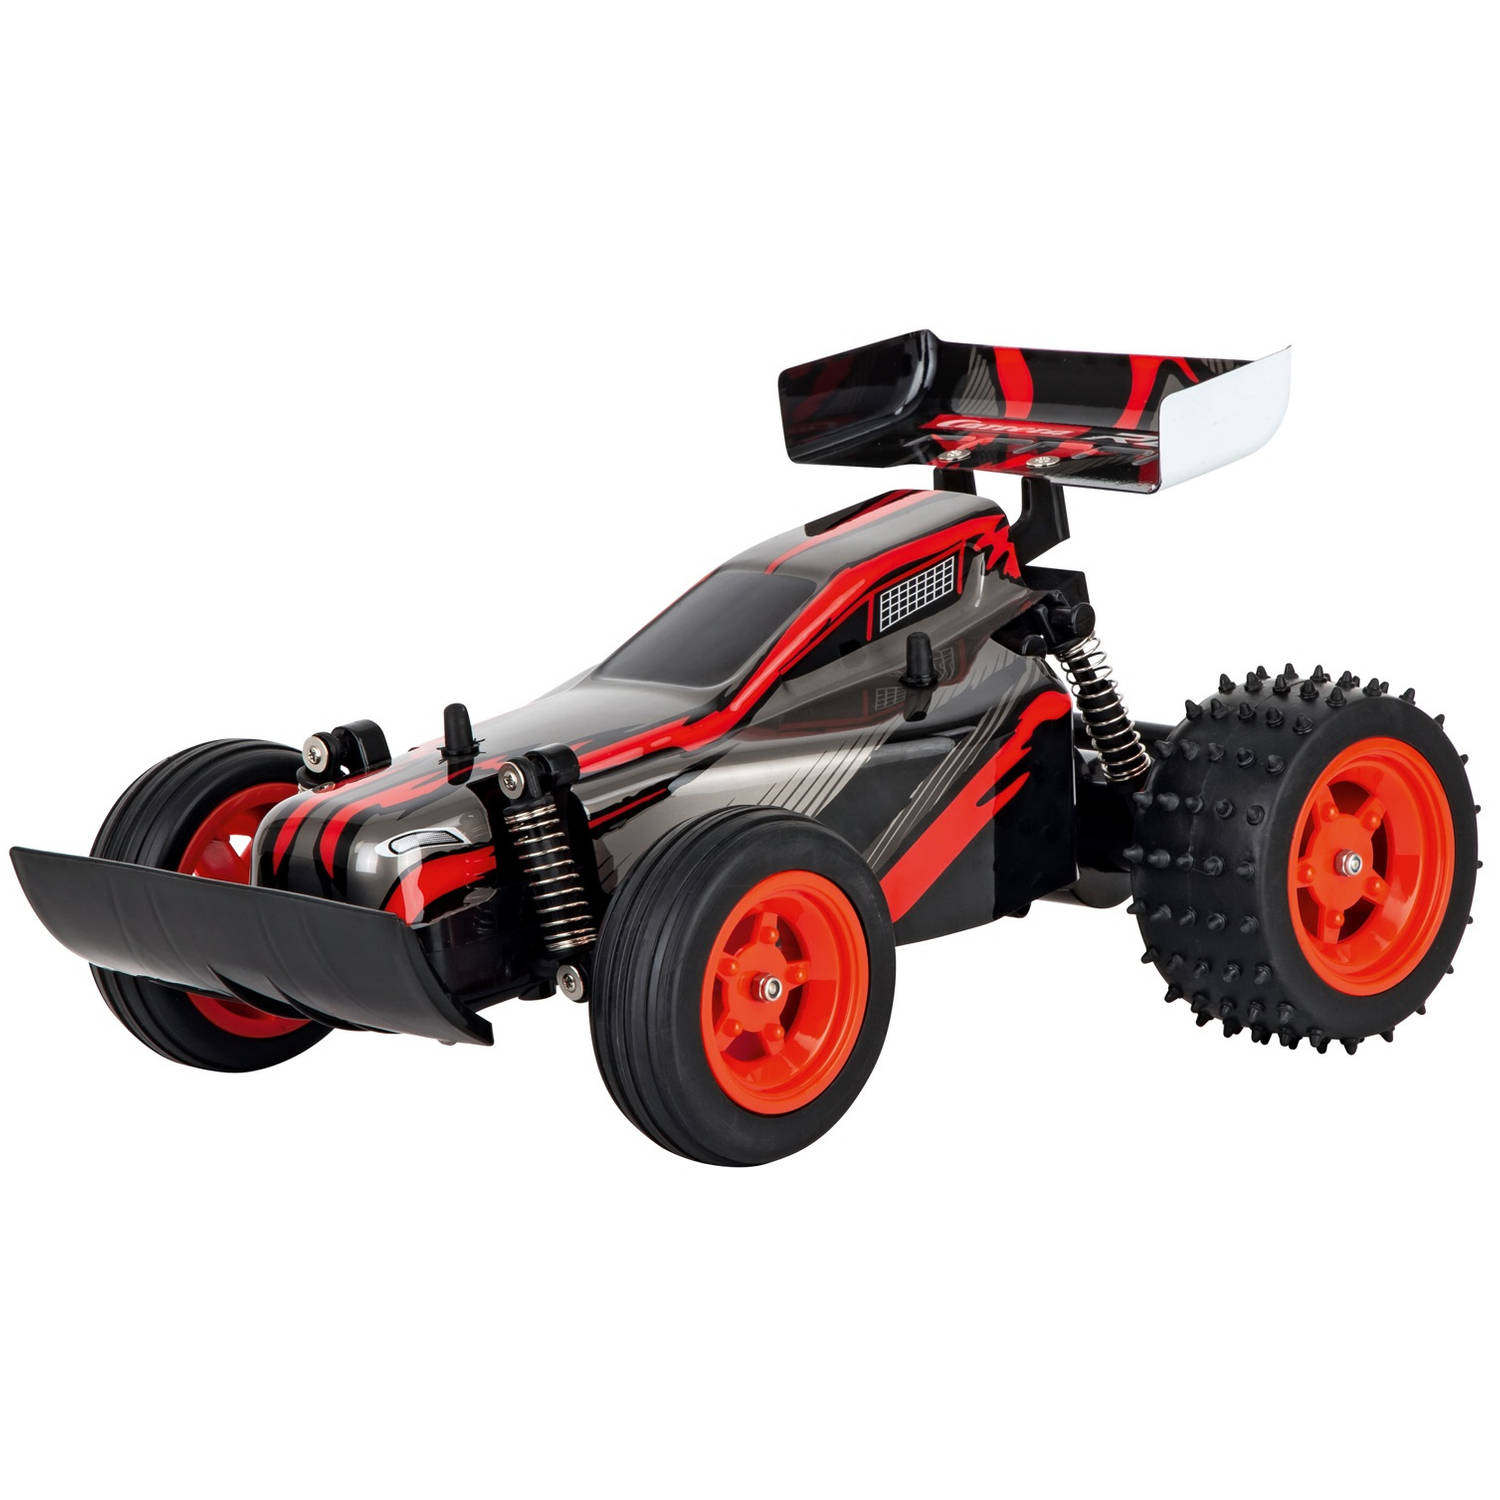 Carrera auto RC Race Buggy 2,4 GHz 1:16 zwart/rood 3 delig